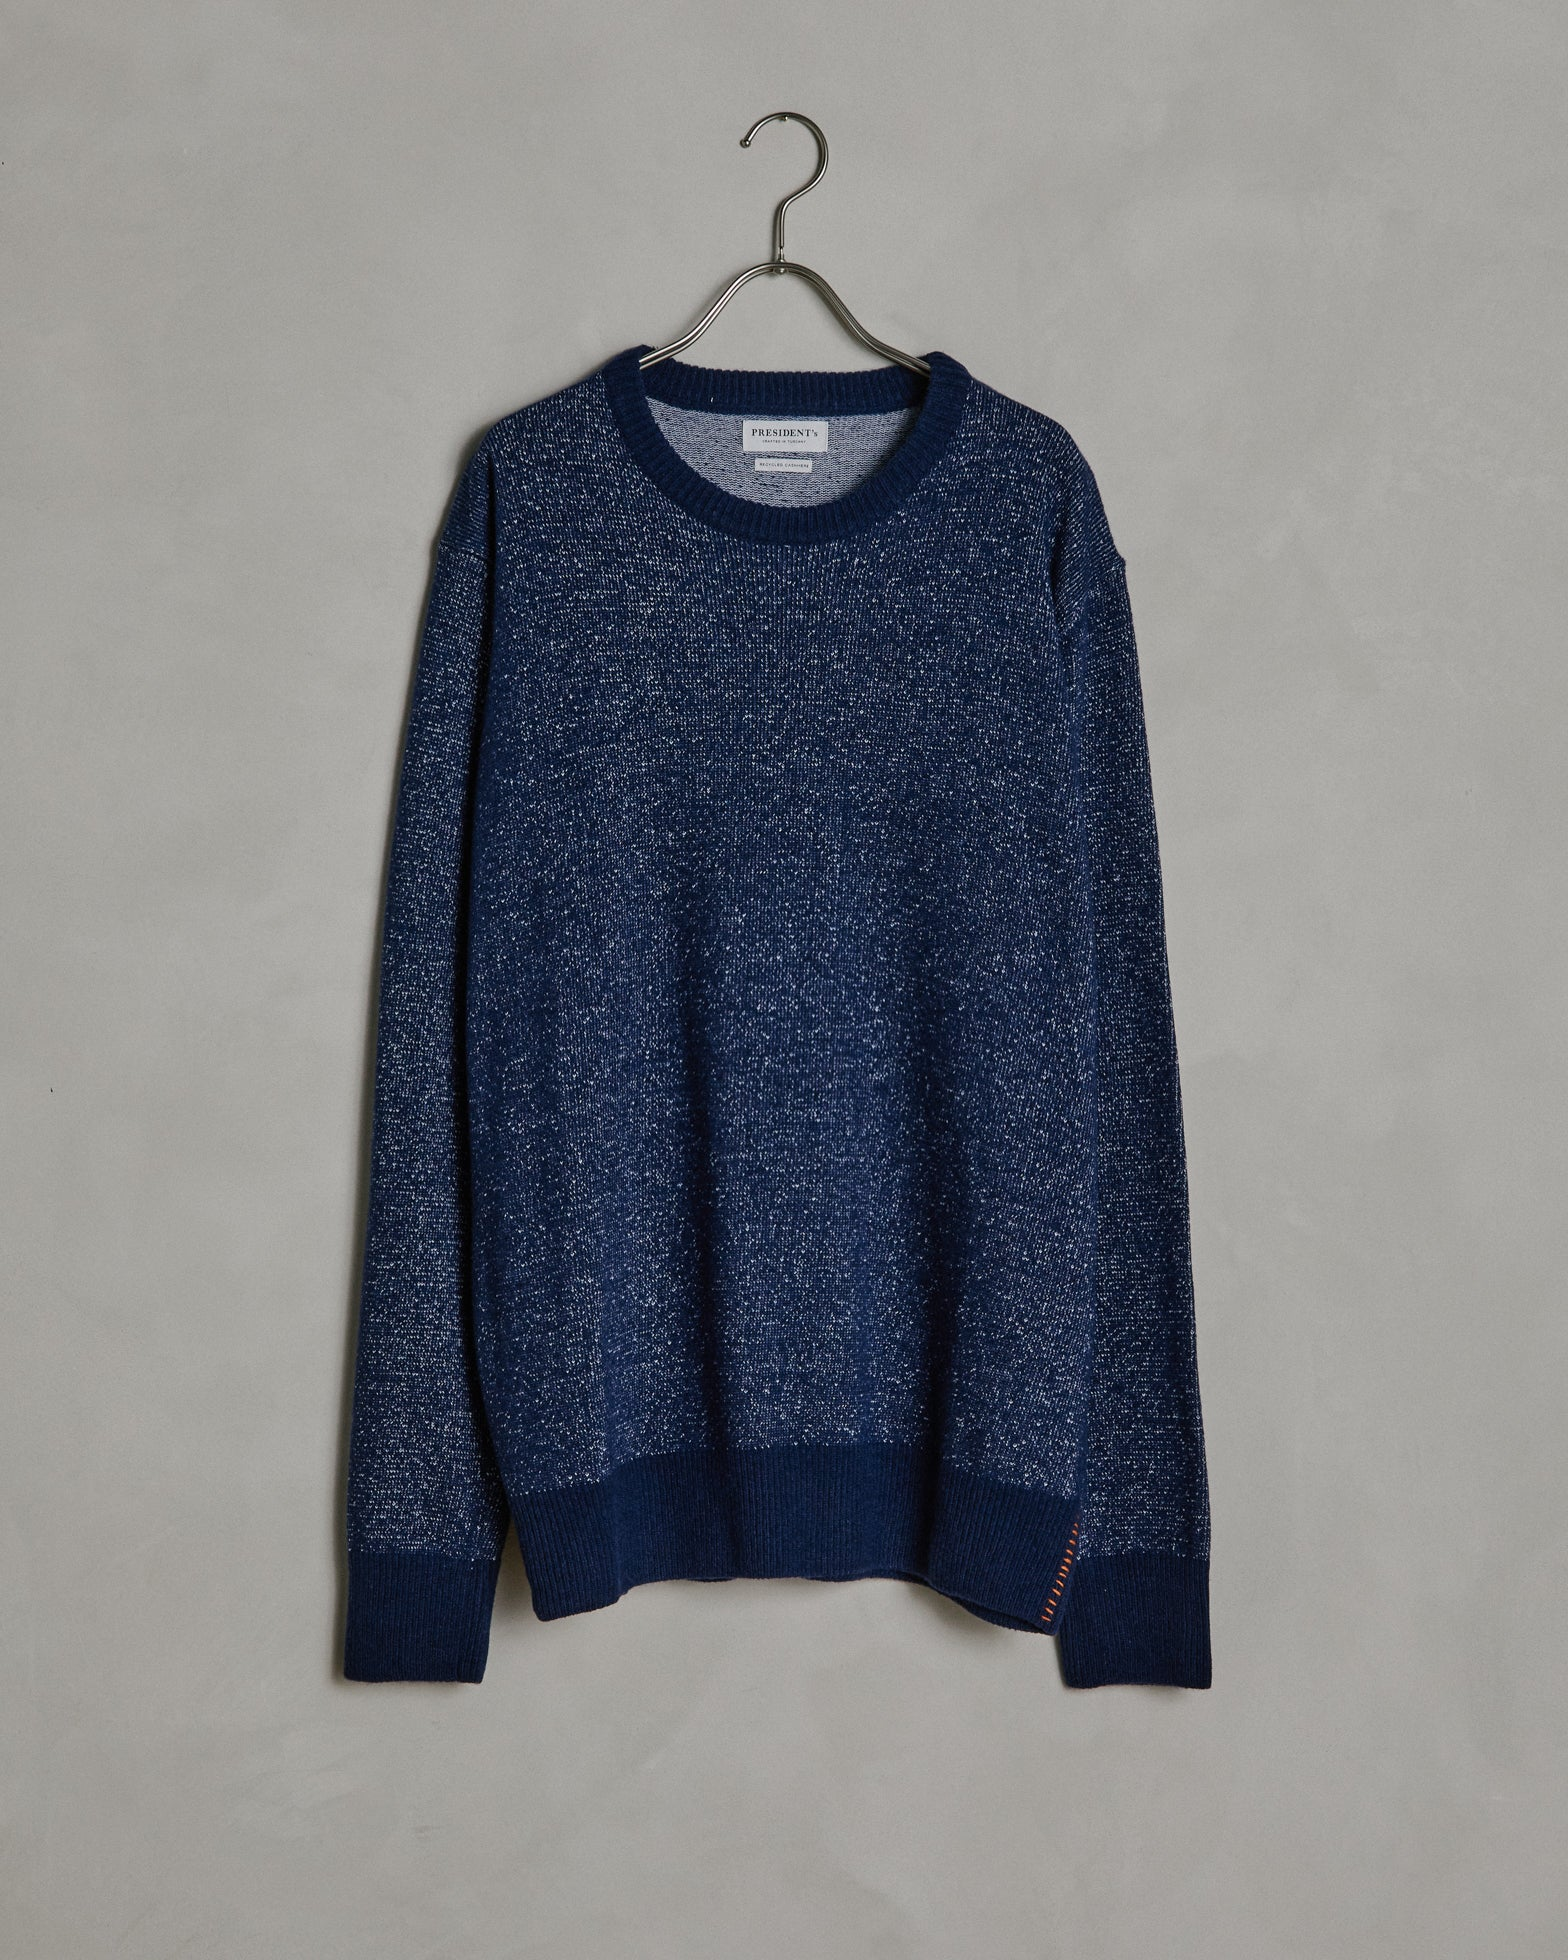 Cotton/Cashmere Crew Neck in Navy